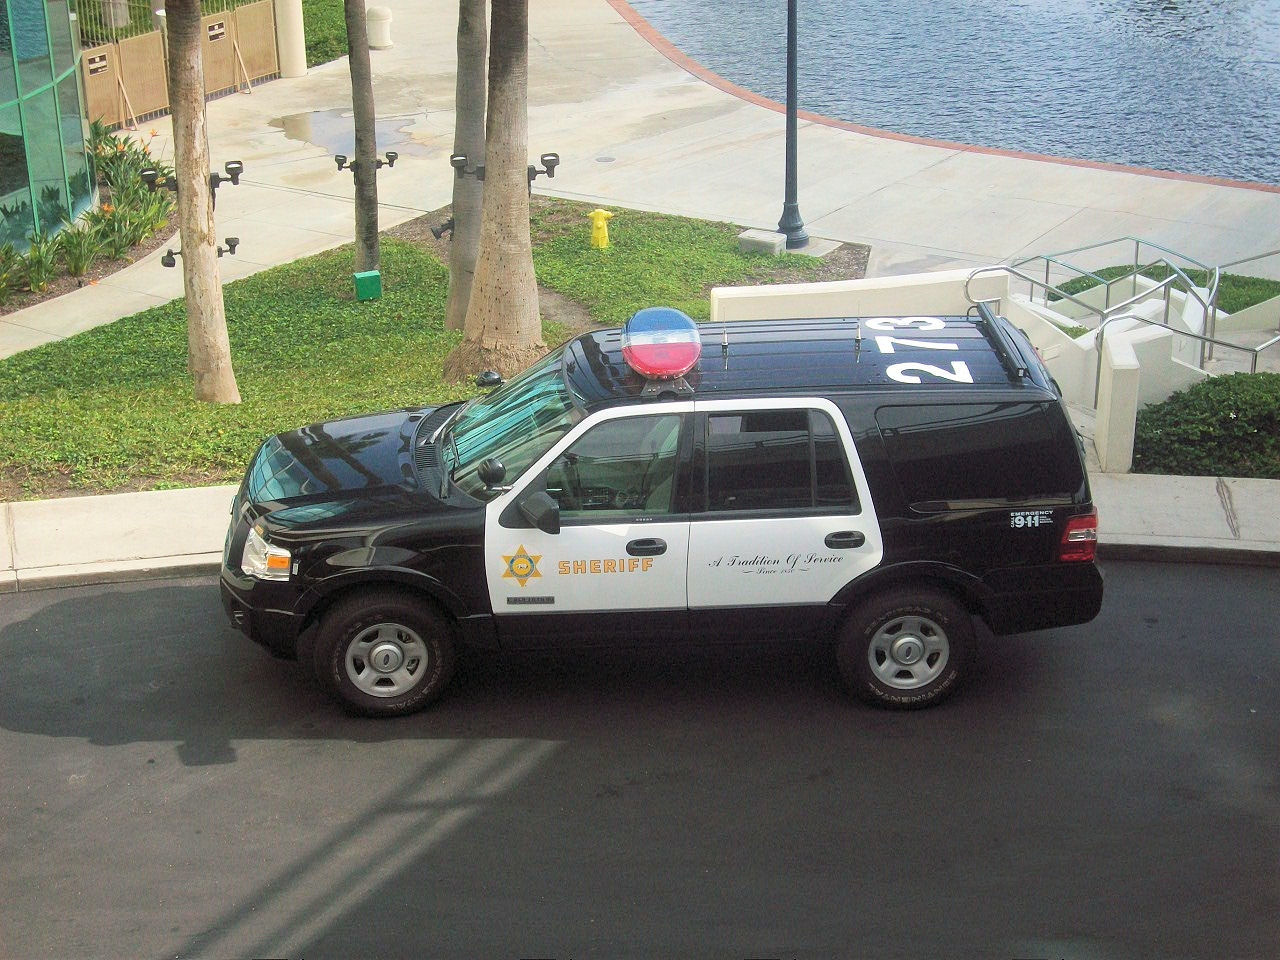 CA - LA County Sheriff